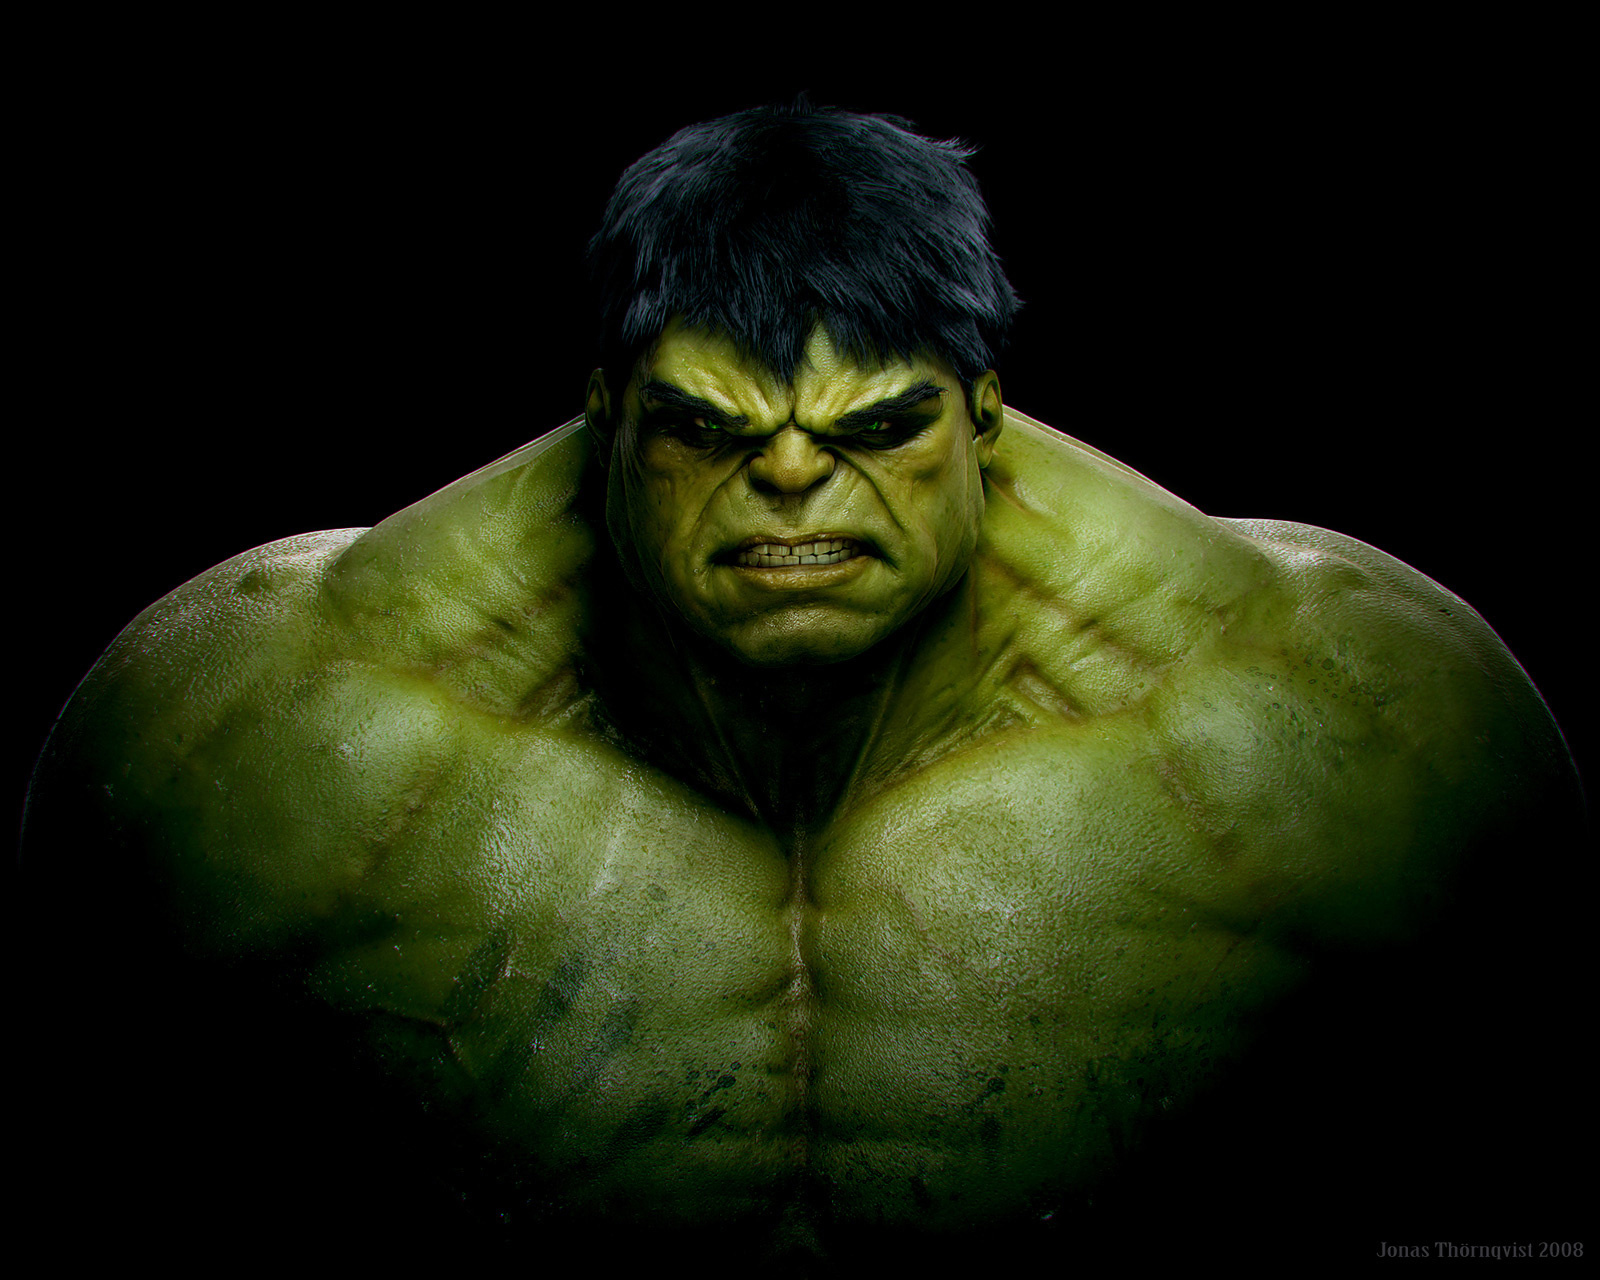 http://1.bp.blogspot.com/-b8Amqtxq4co/UPBLoemeMzI/AAAAAAAAATY/N73EgFPf3V4/s1600/Download-Hulk-HD-Wallpaper-For-Computer.jpg